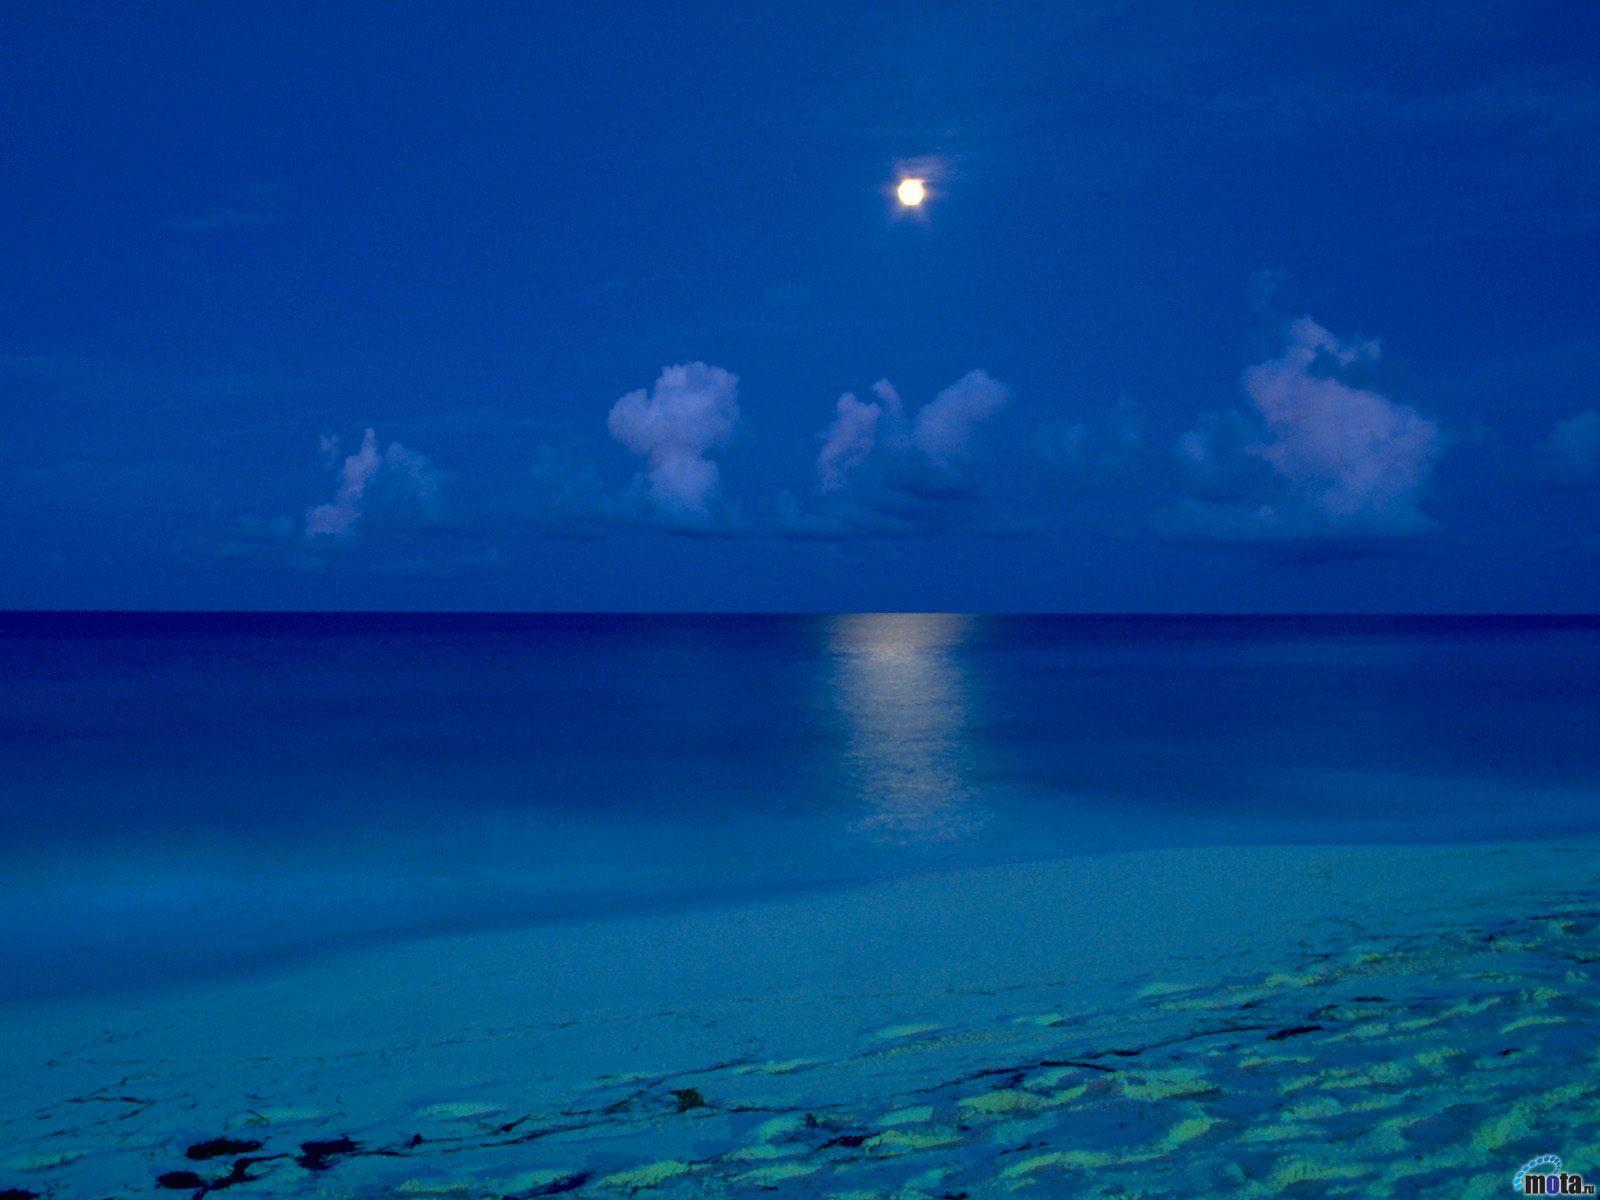 Beach At Night Wallpapers Download Wallpapercraft 1600x1200